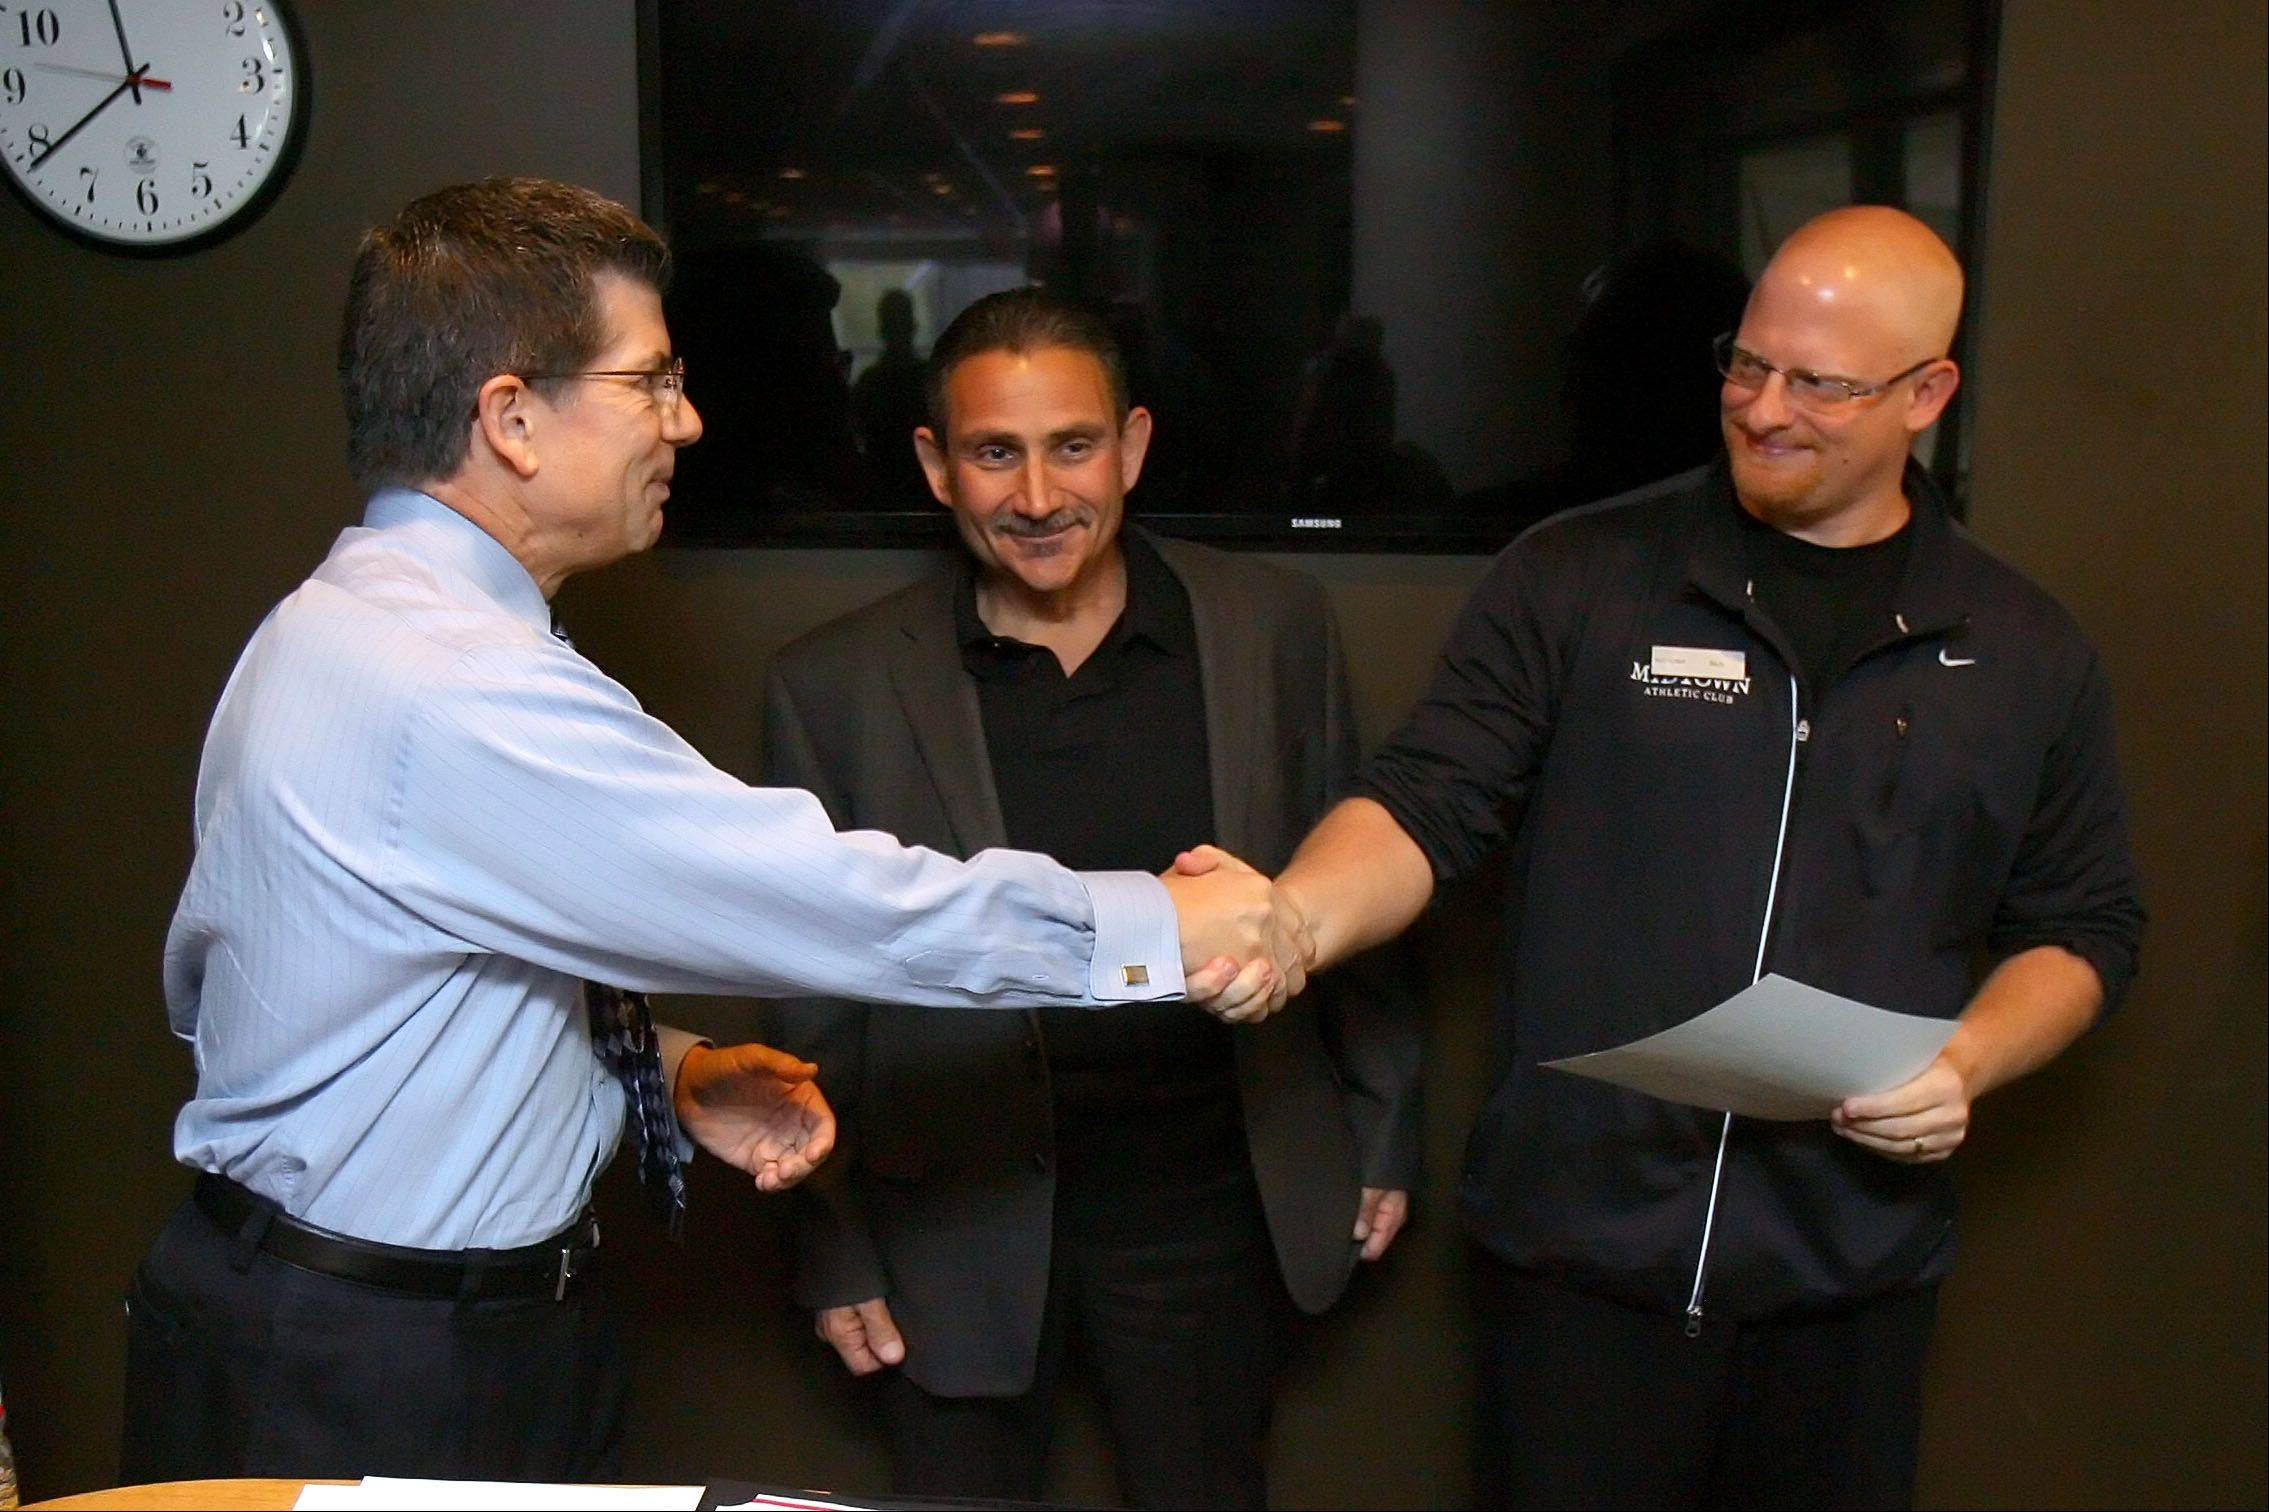 Midtown Athletic Club personal trainer Rich Rossi, right, shakes hands with Midtown Athletic Club general manager Rich Novelli. Rossi was honored for saving Gary Greenberg of Highland Park, middle, after he suffered a heart attack at the facility two weeks ago.